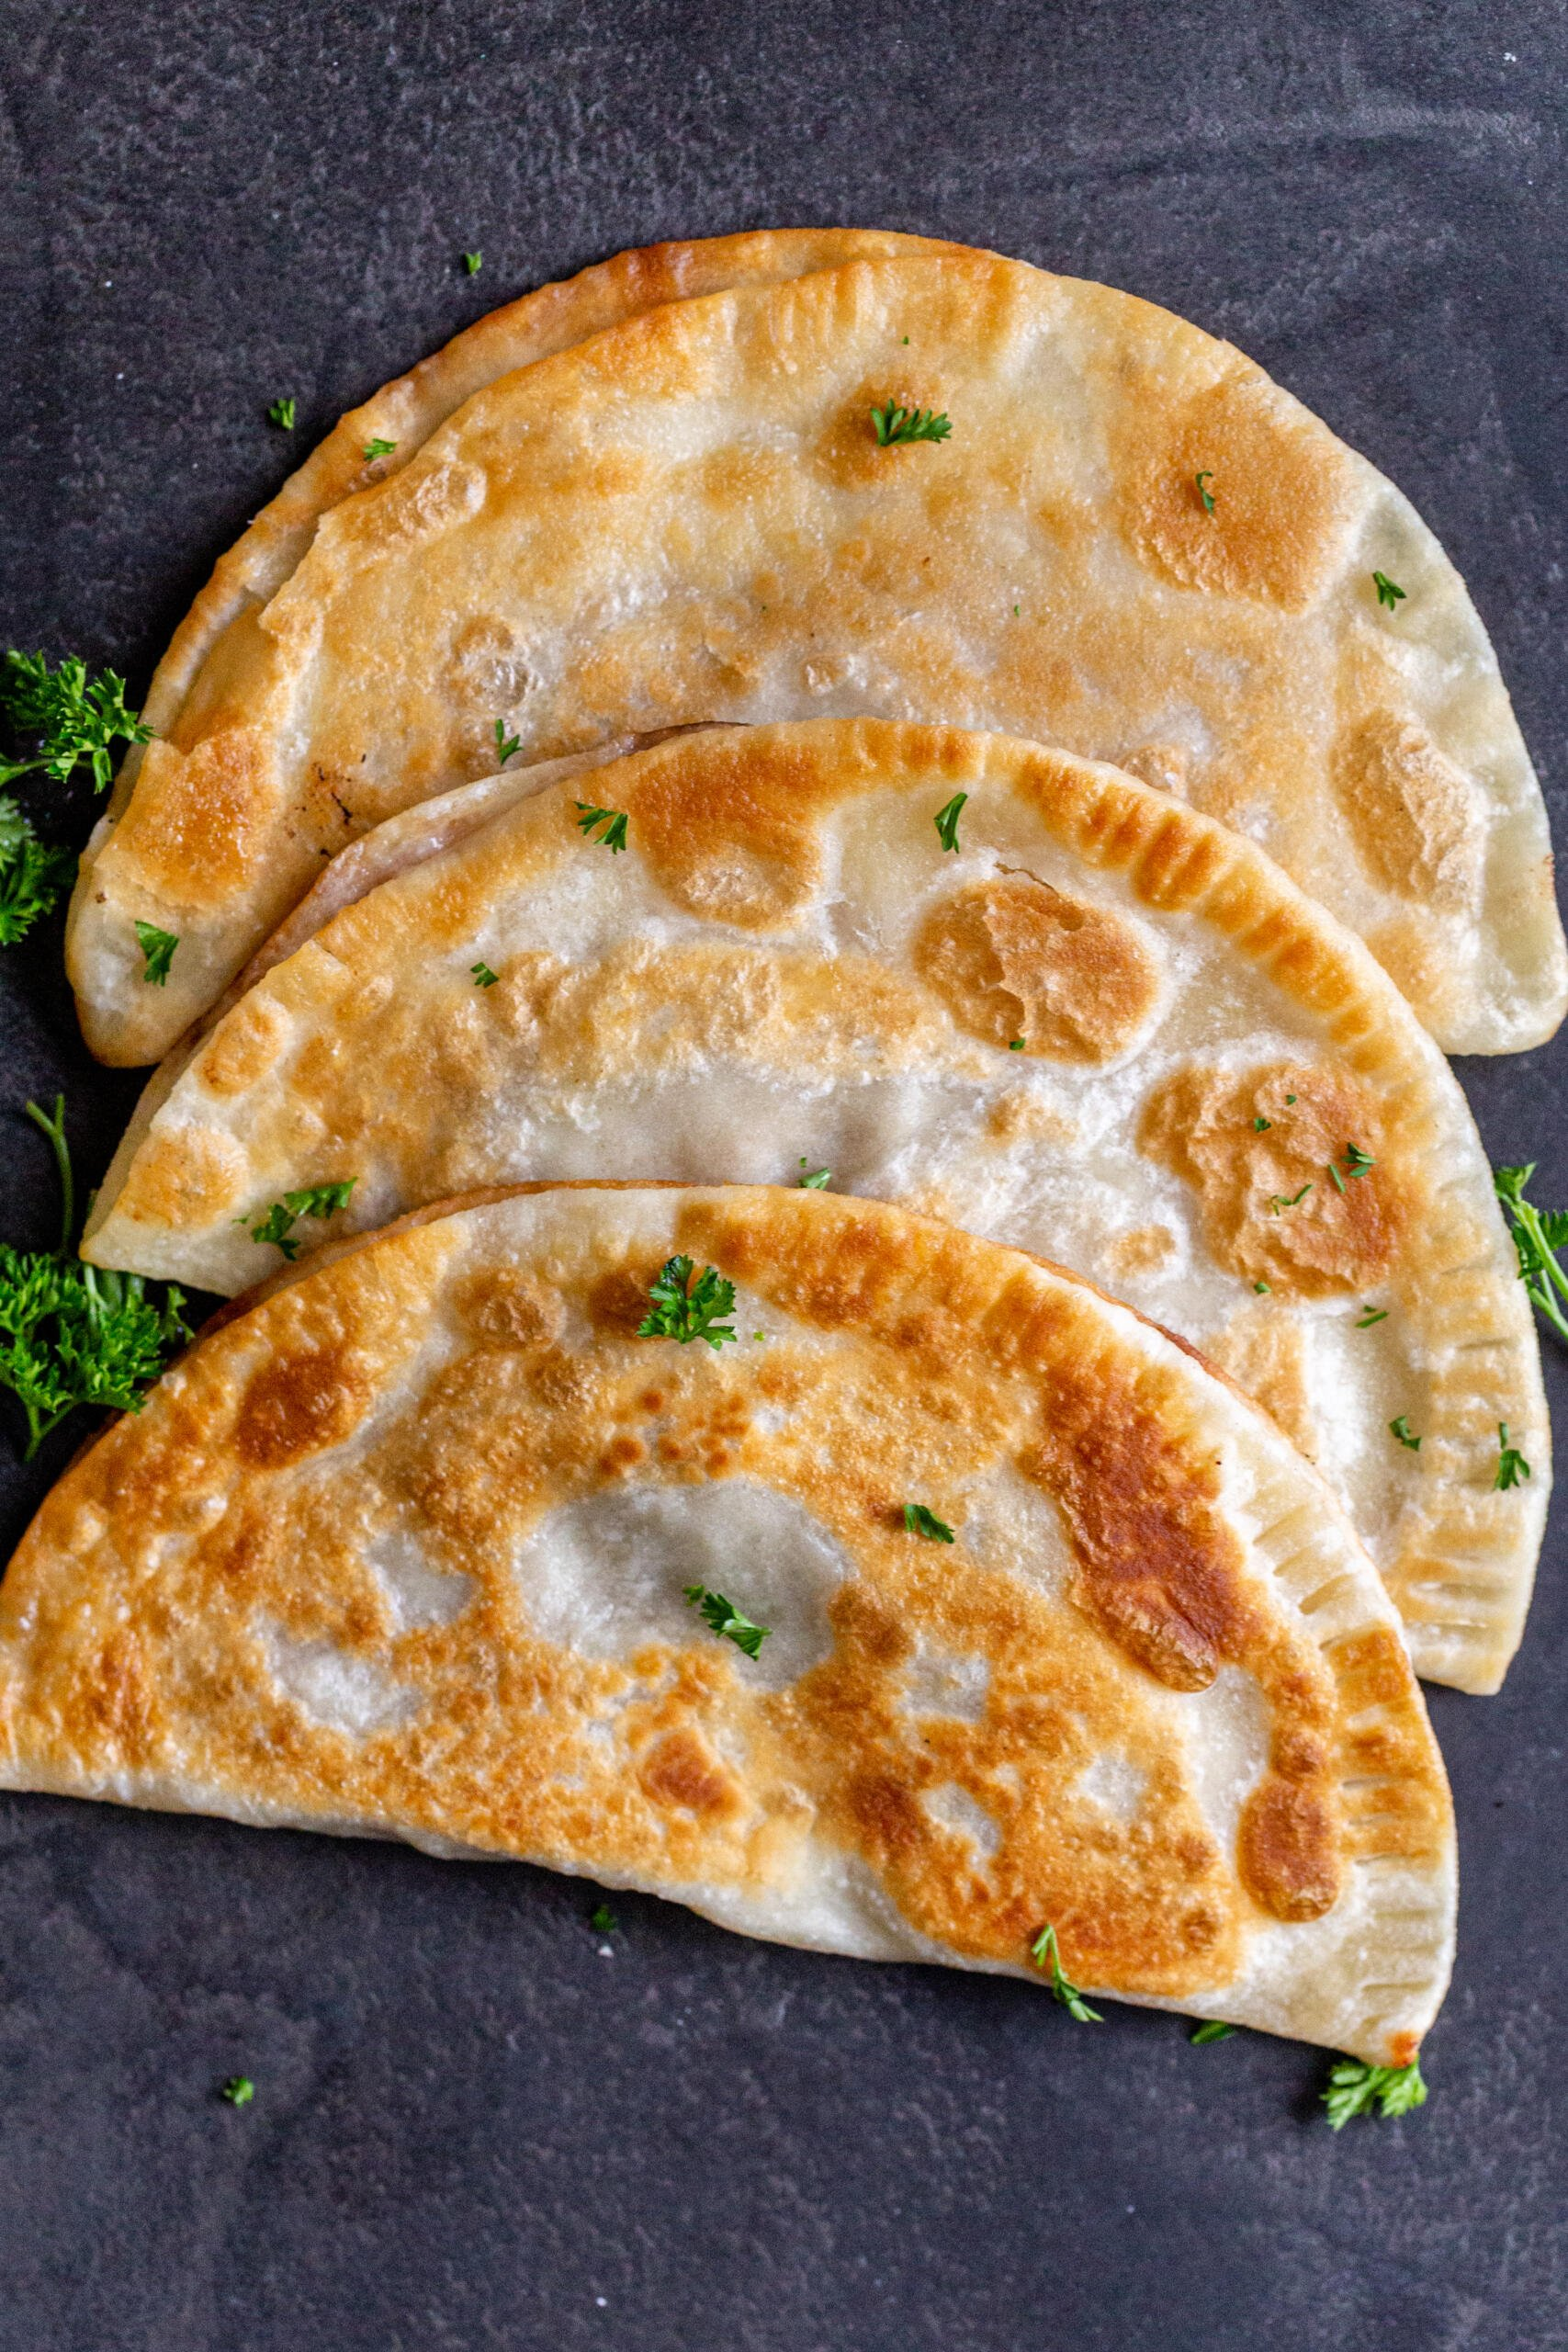 Chebureki with herbs on a counter